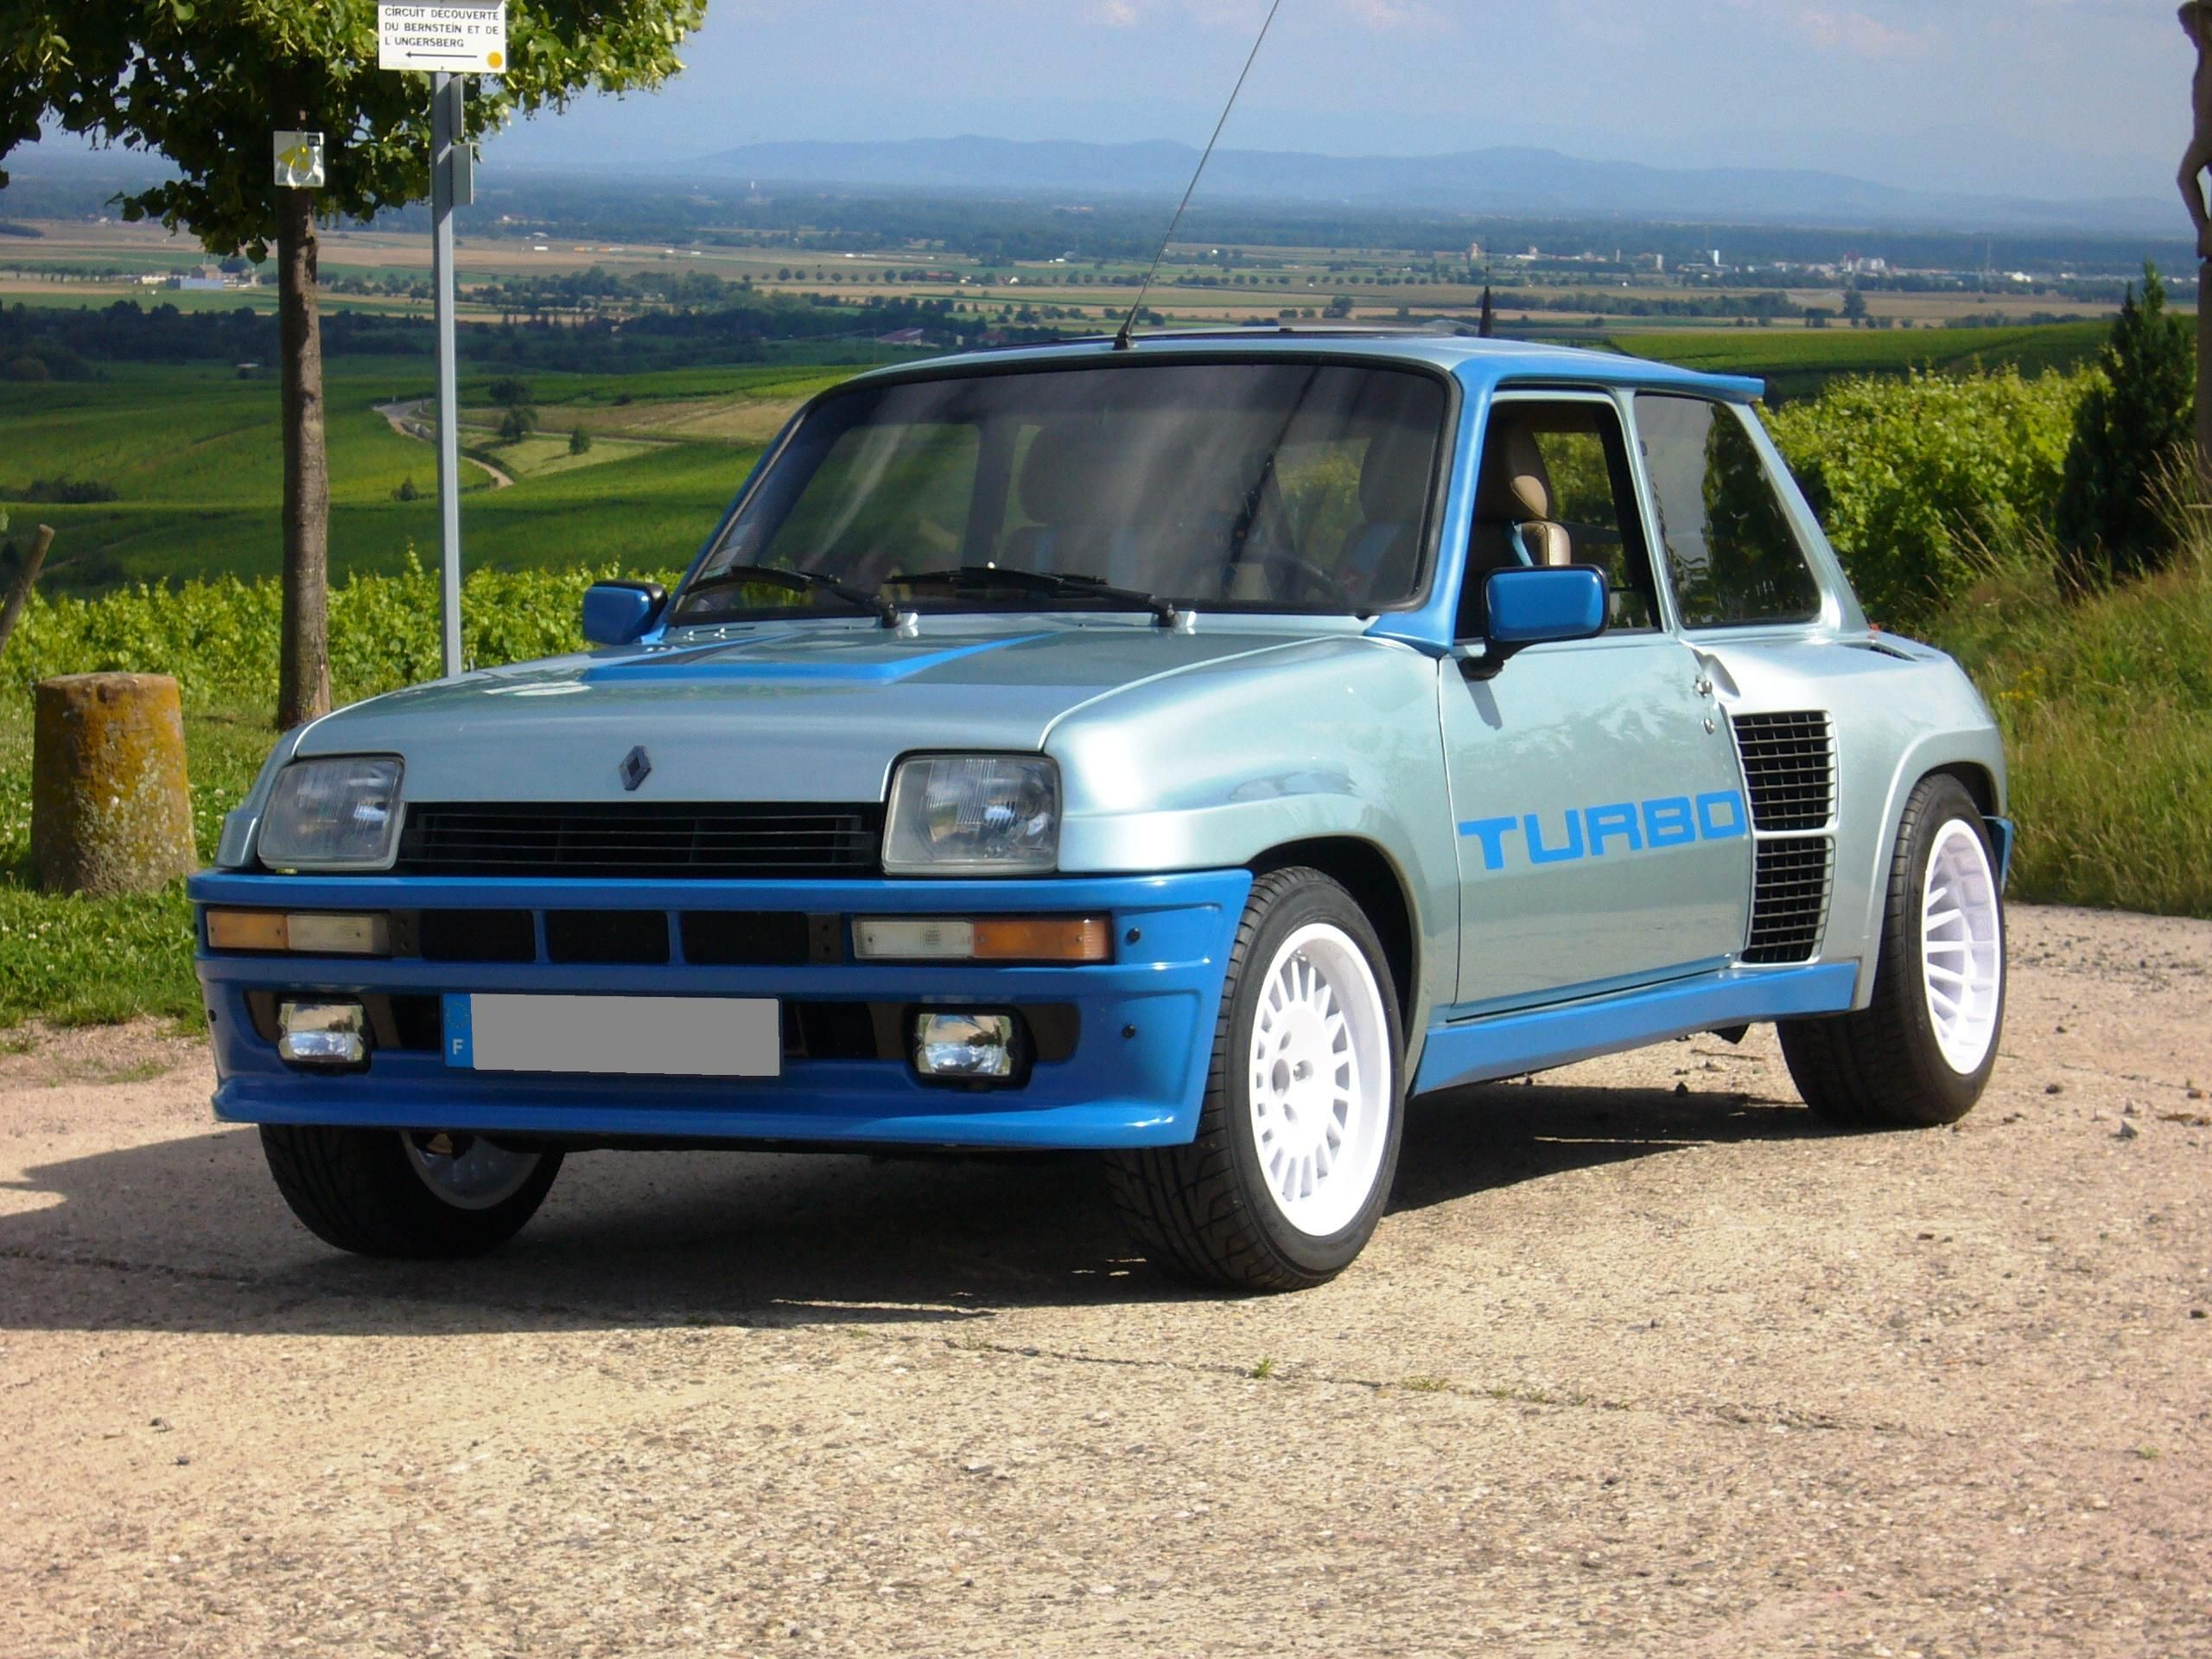 1980 Renault R5 GT Turbo 2